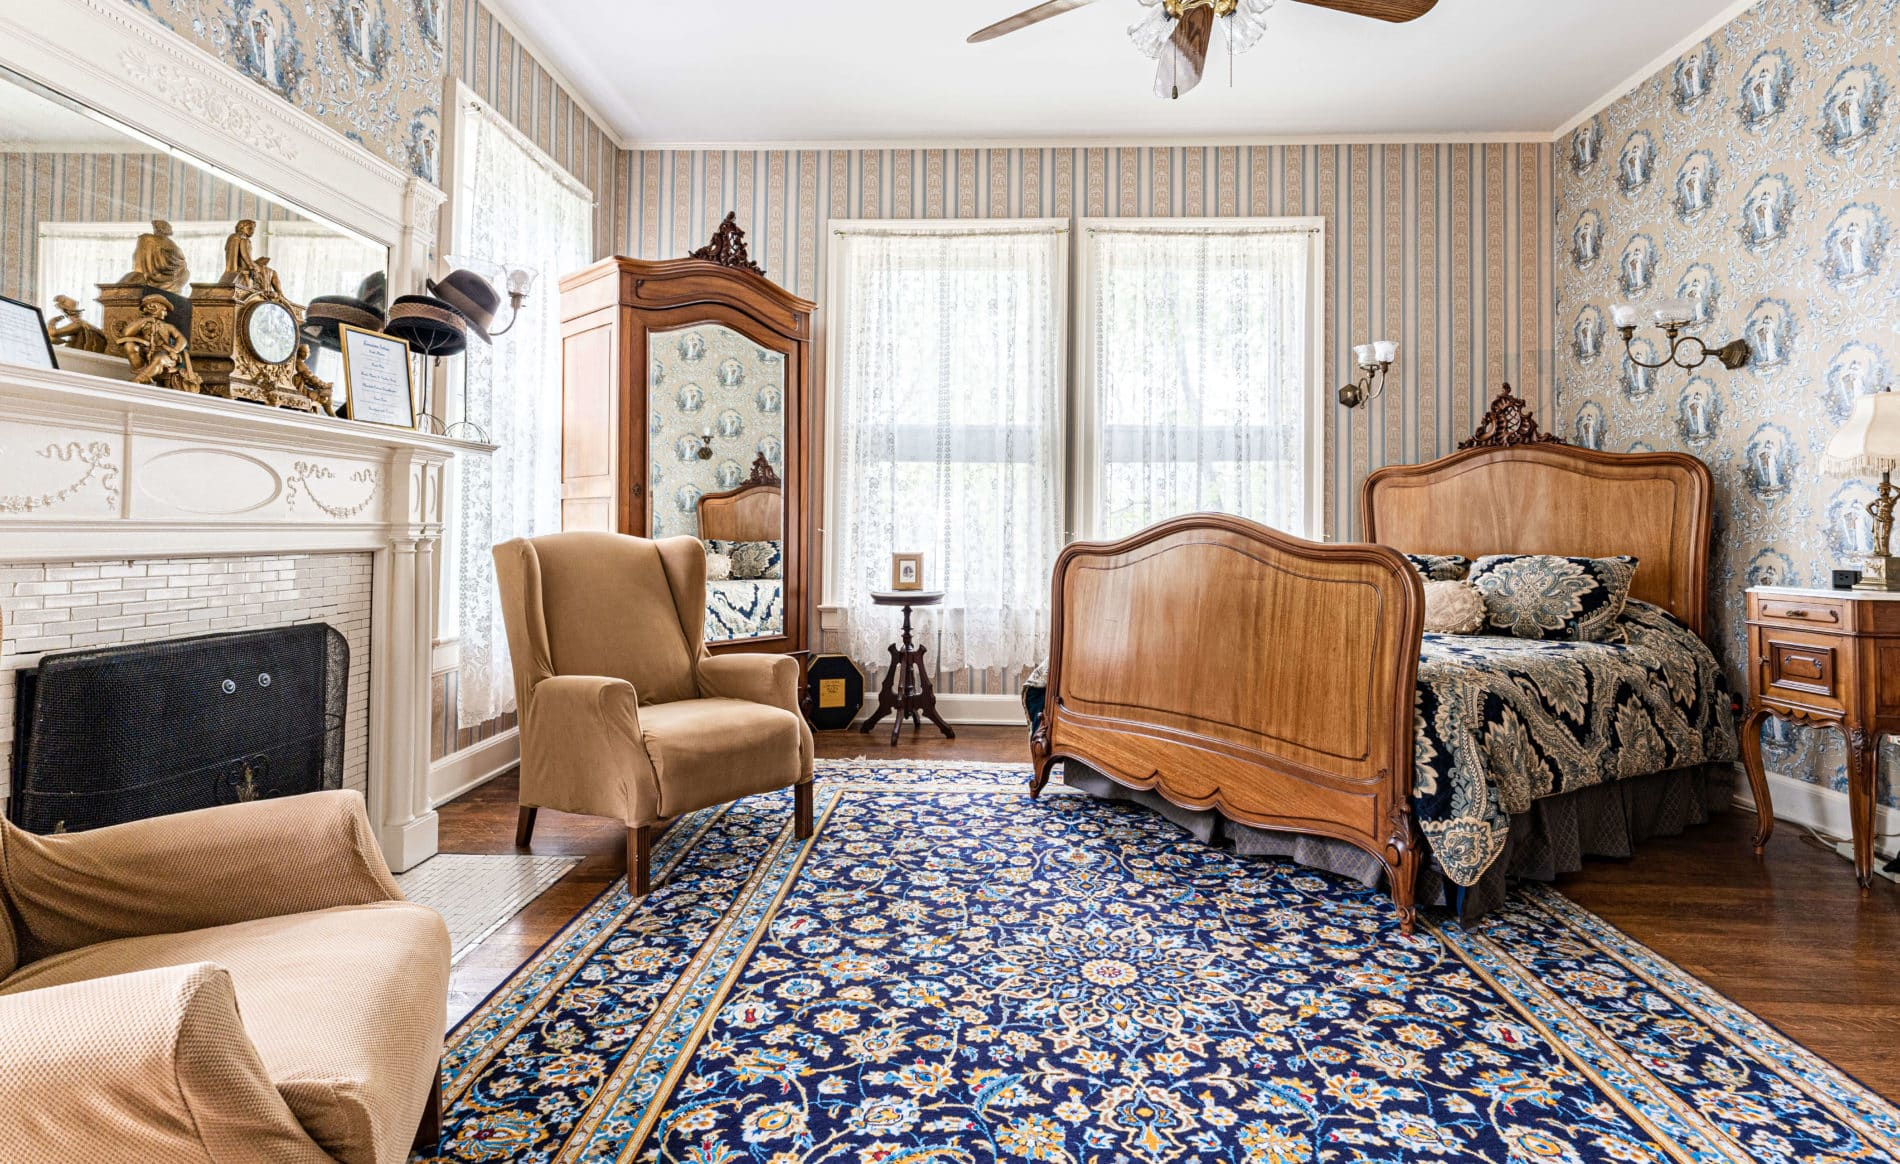 Julia's Room with a vibrant blue rug and antique headboard